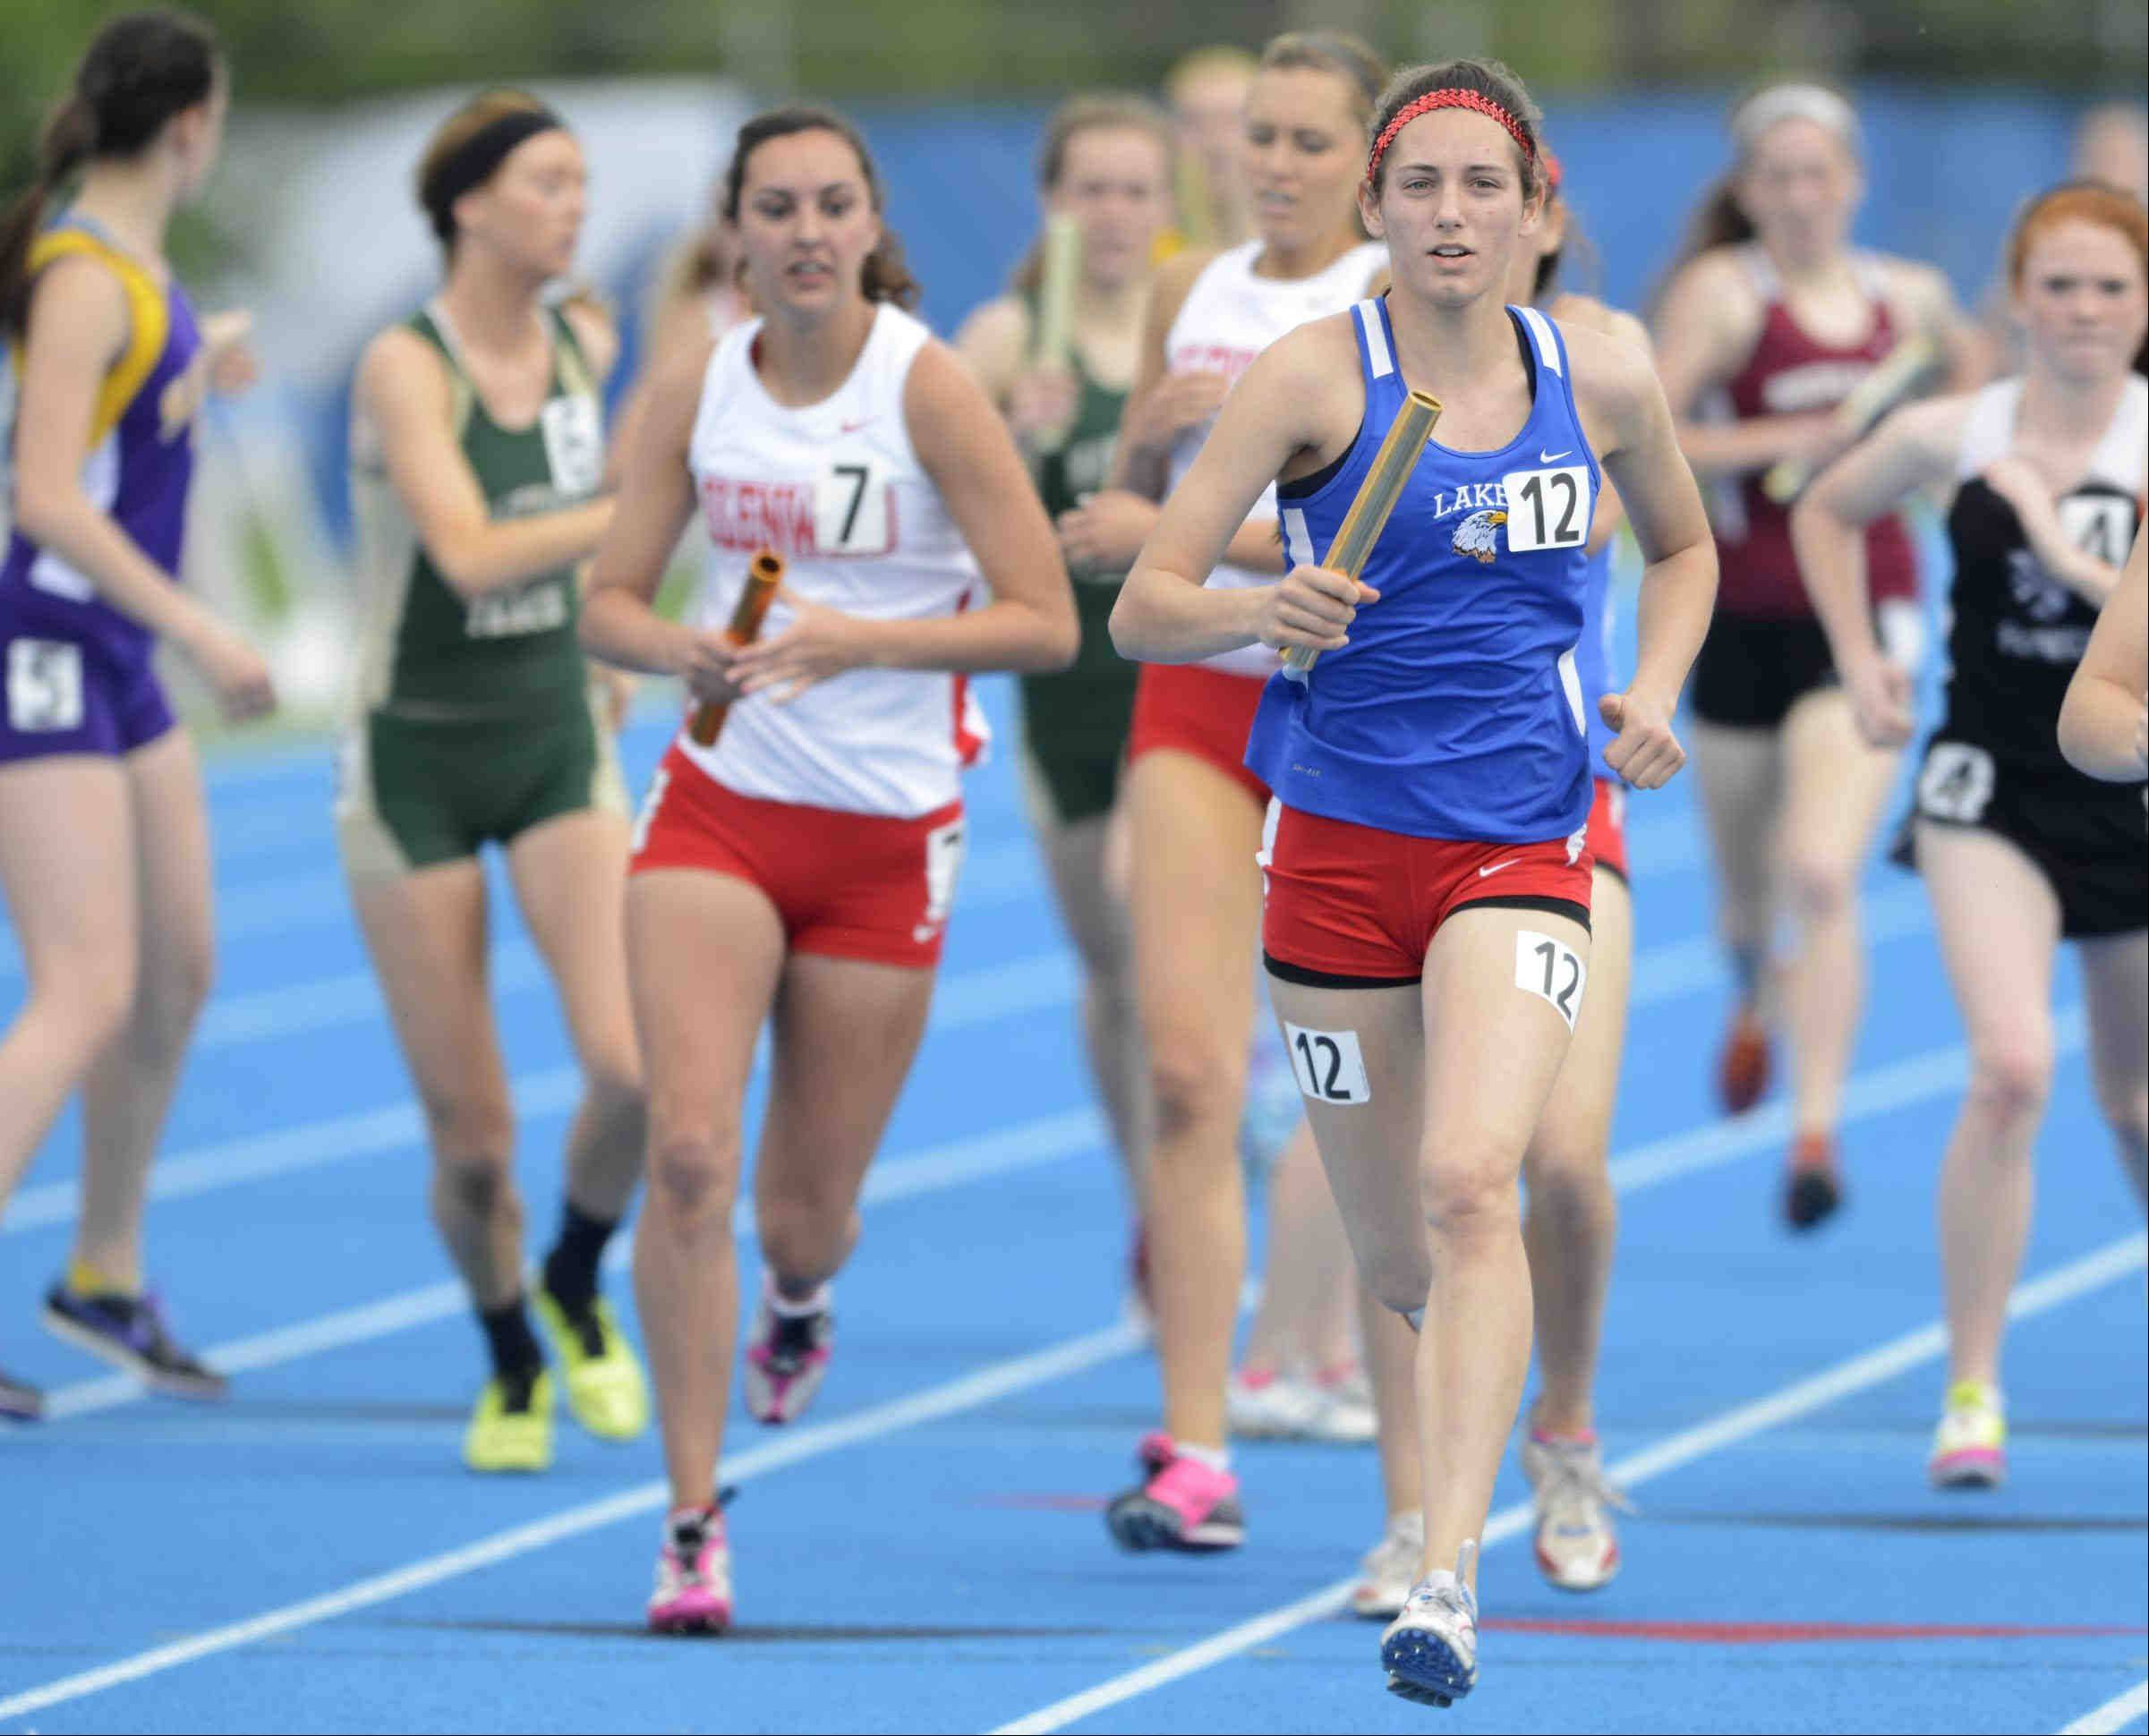 Lakes' Danielle Griesbaum takes the baton to a win on the anchor leg Saturday at the Class 2A 3,200 meter relay at the girls state track and field finals at O'Brien Stadium at Eastern Illinois University in Charleston.